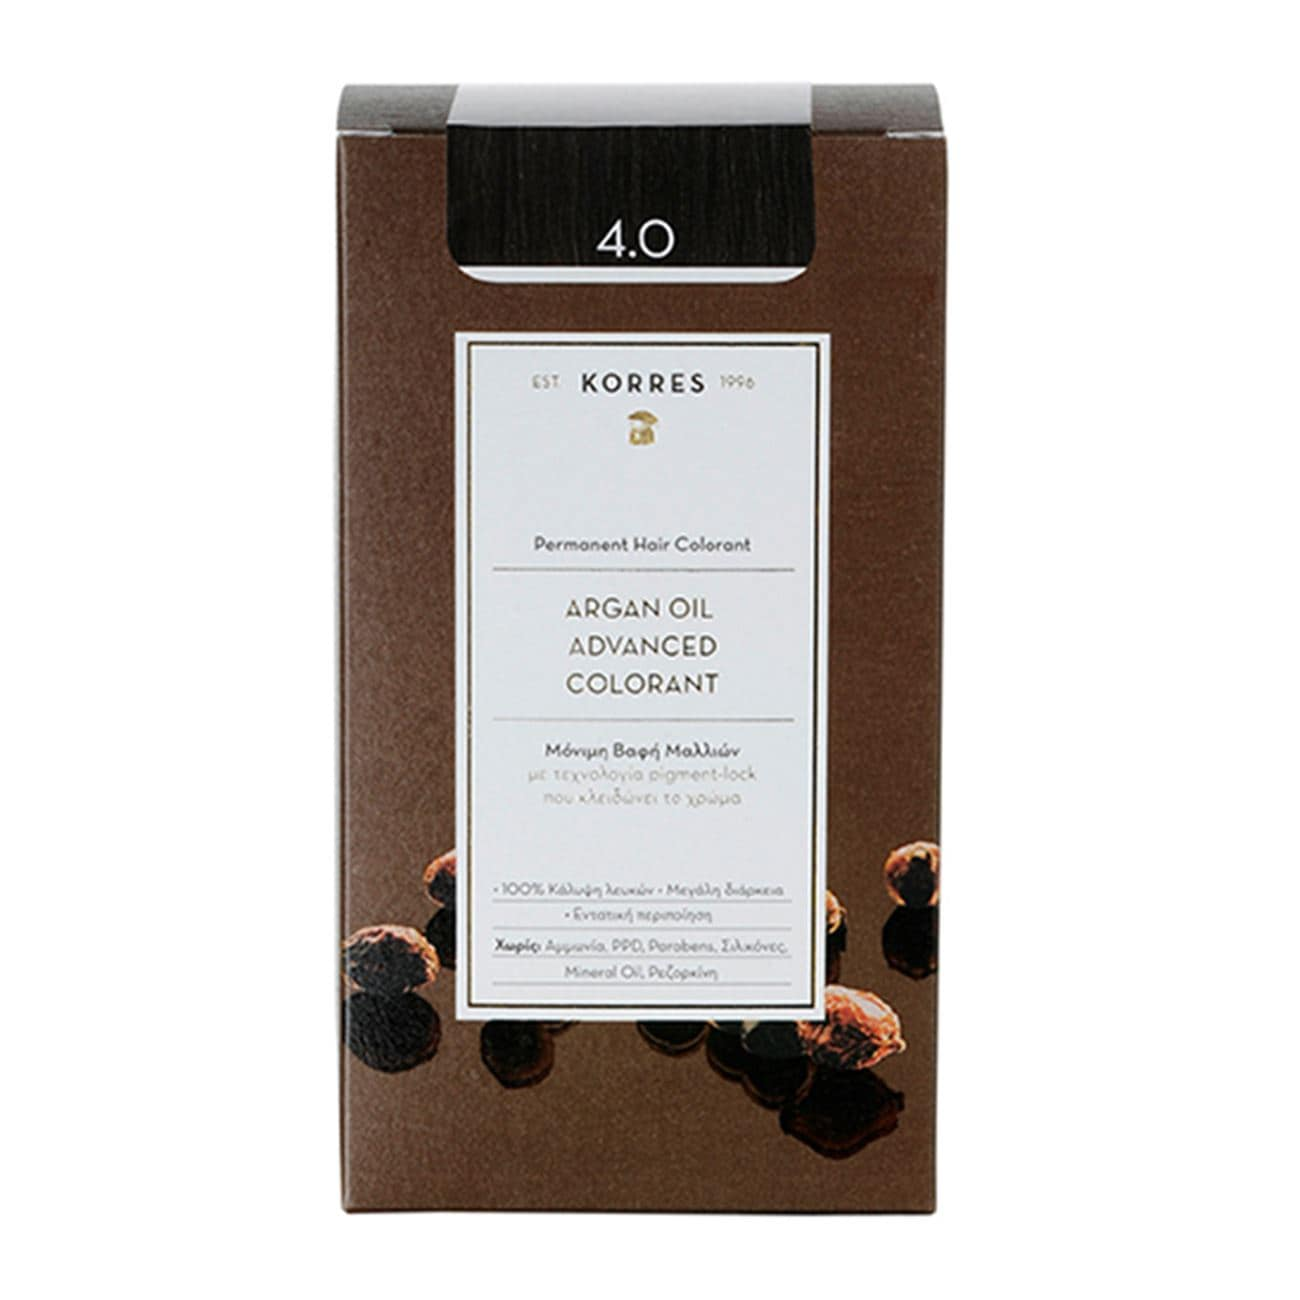 Argan Oil Advanced Colorant 4.0 Καστανό